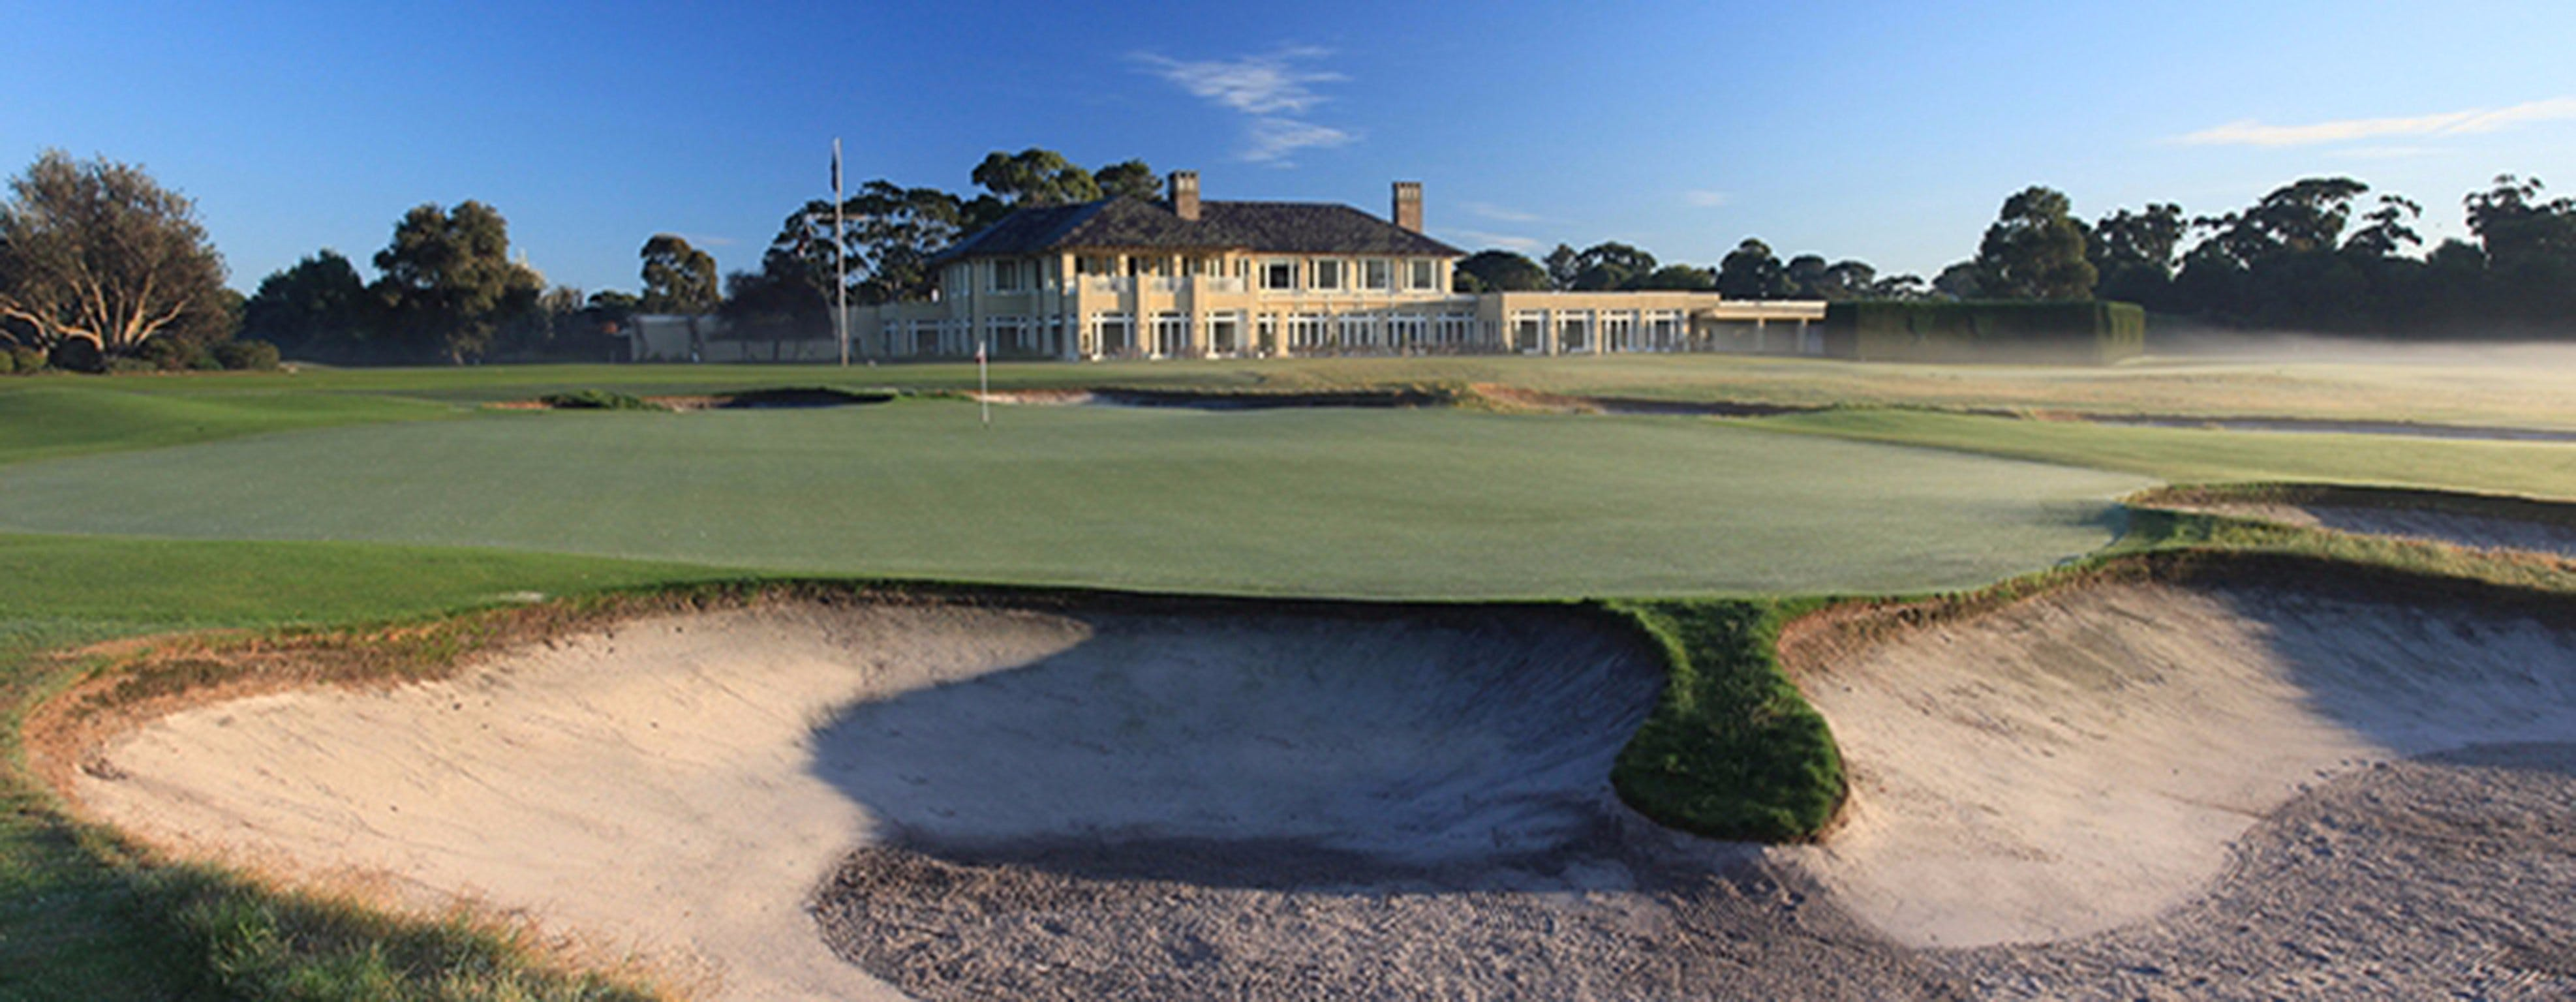 The Royal Melbourne Golf Club - Find Attractions